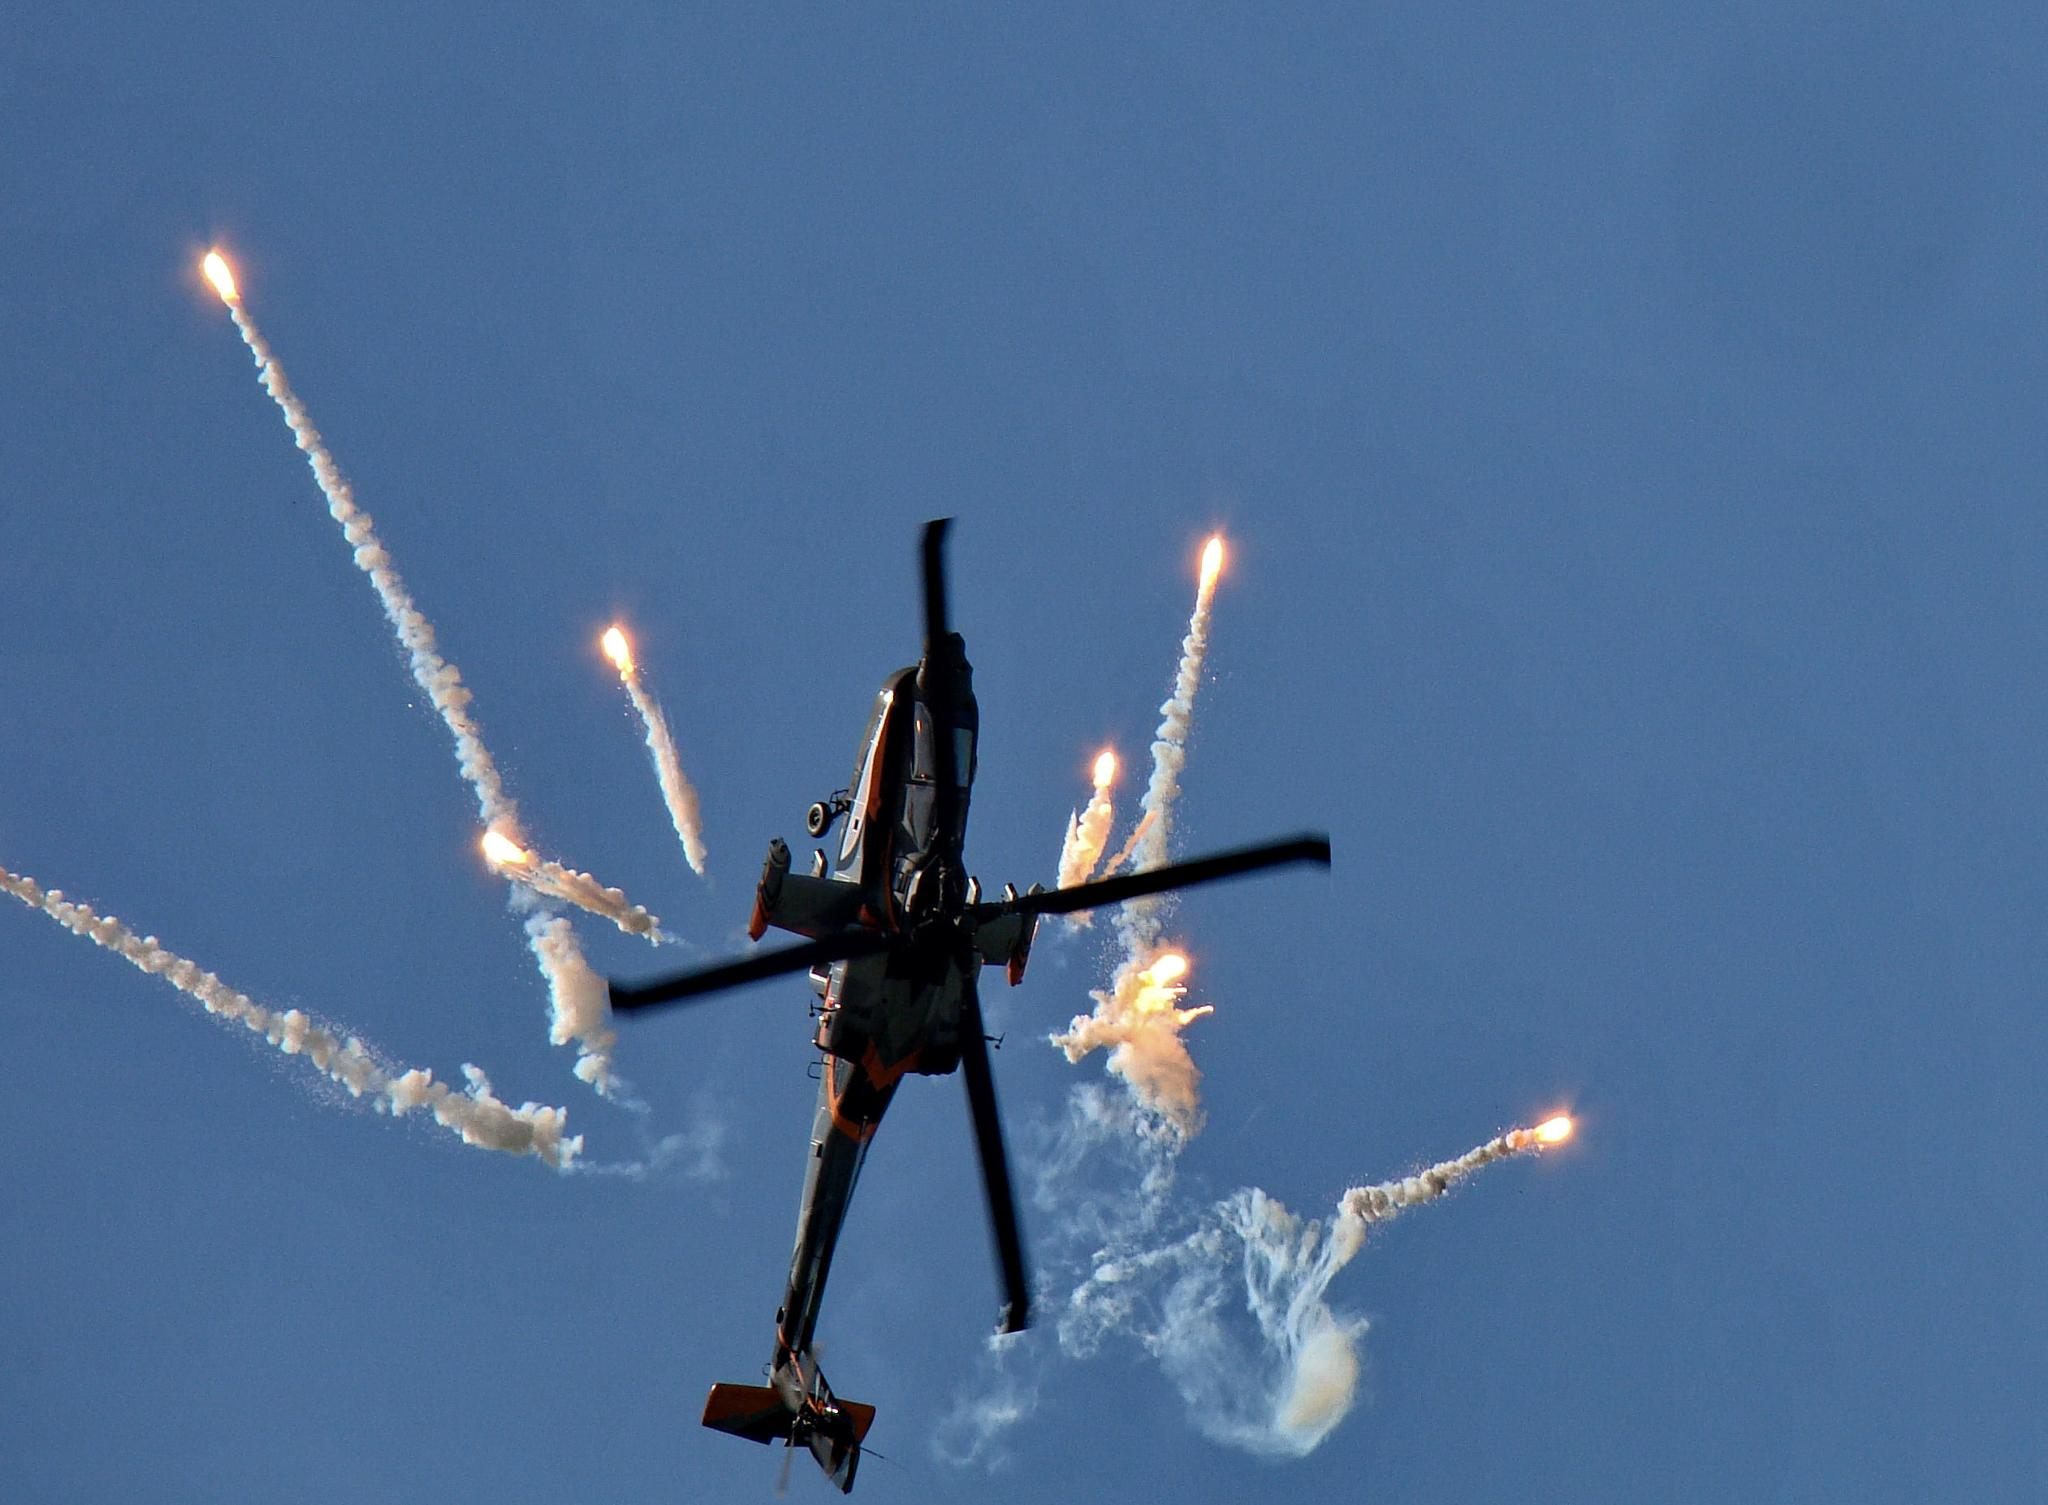 airshow by H.Boorsma